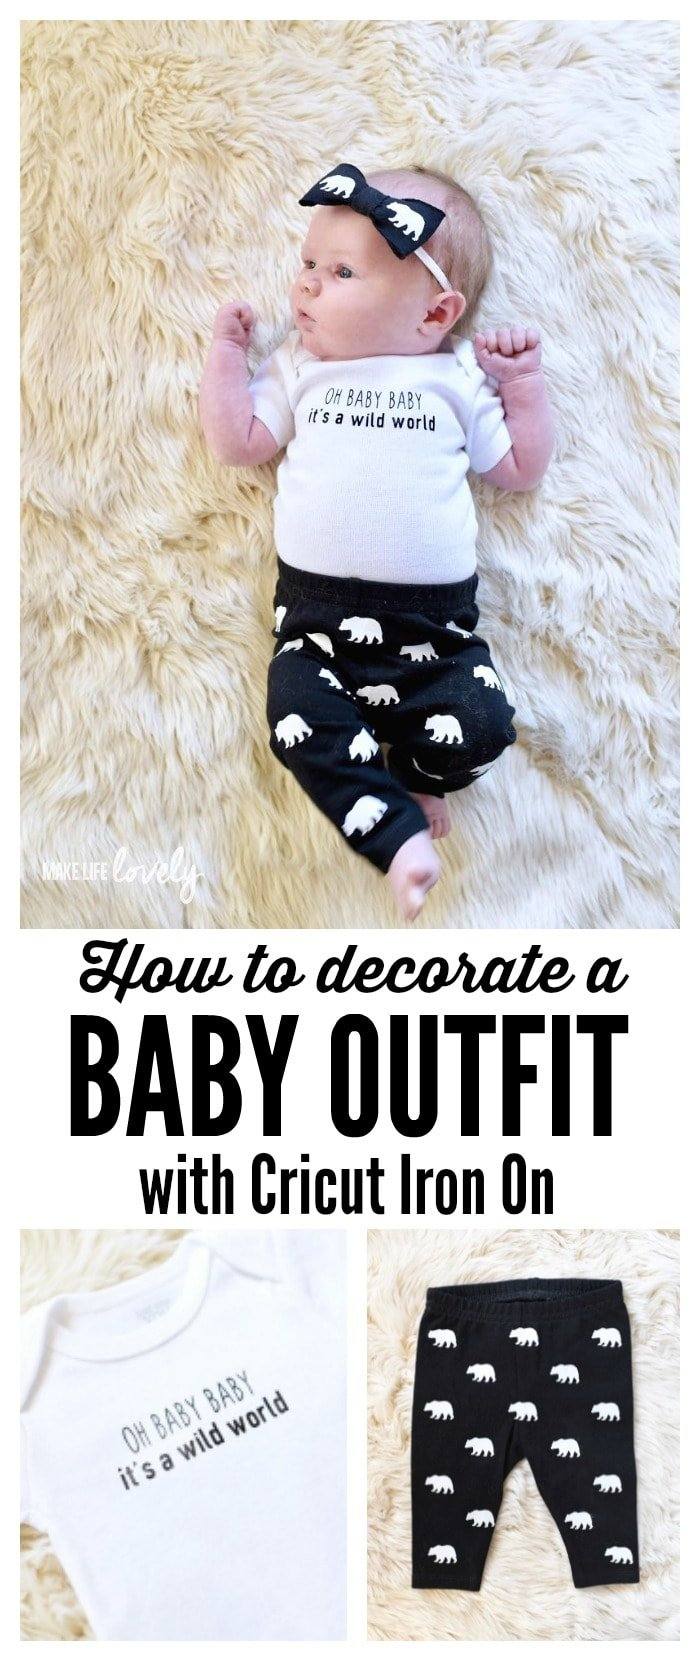 Cricut Iron On Onesie, Leggings, and Hair Bow DIY for Baby